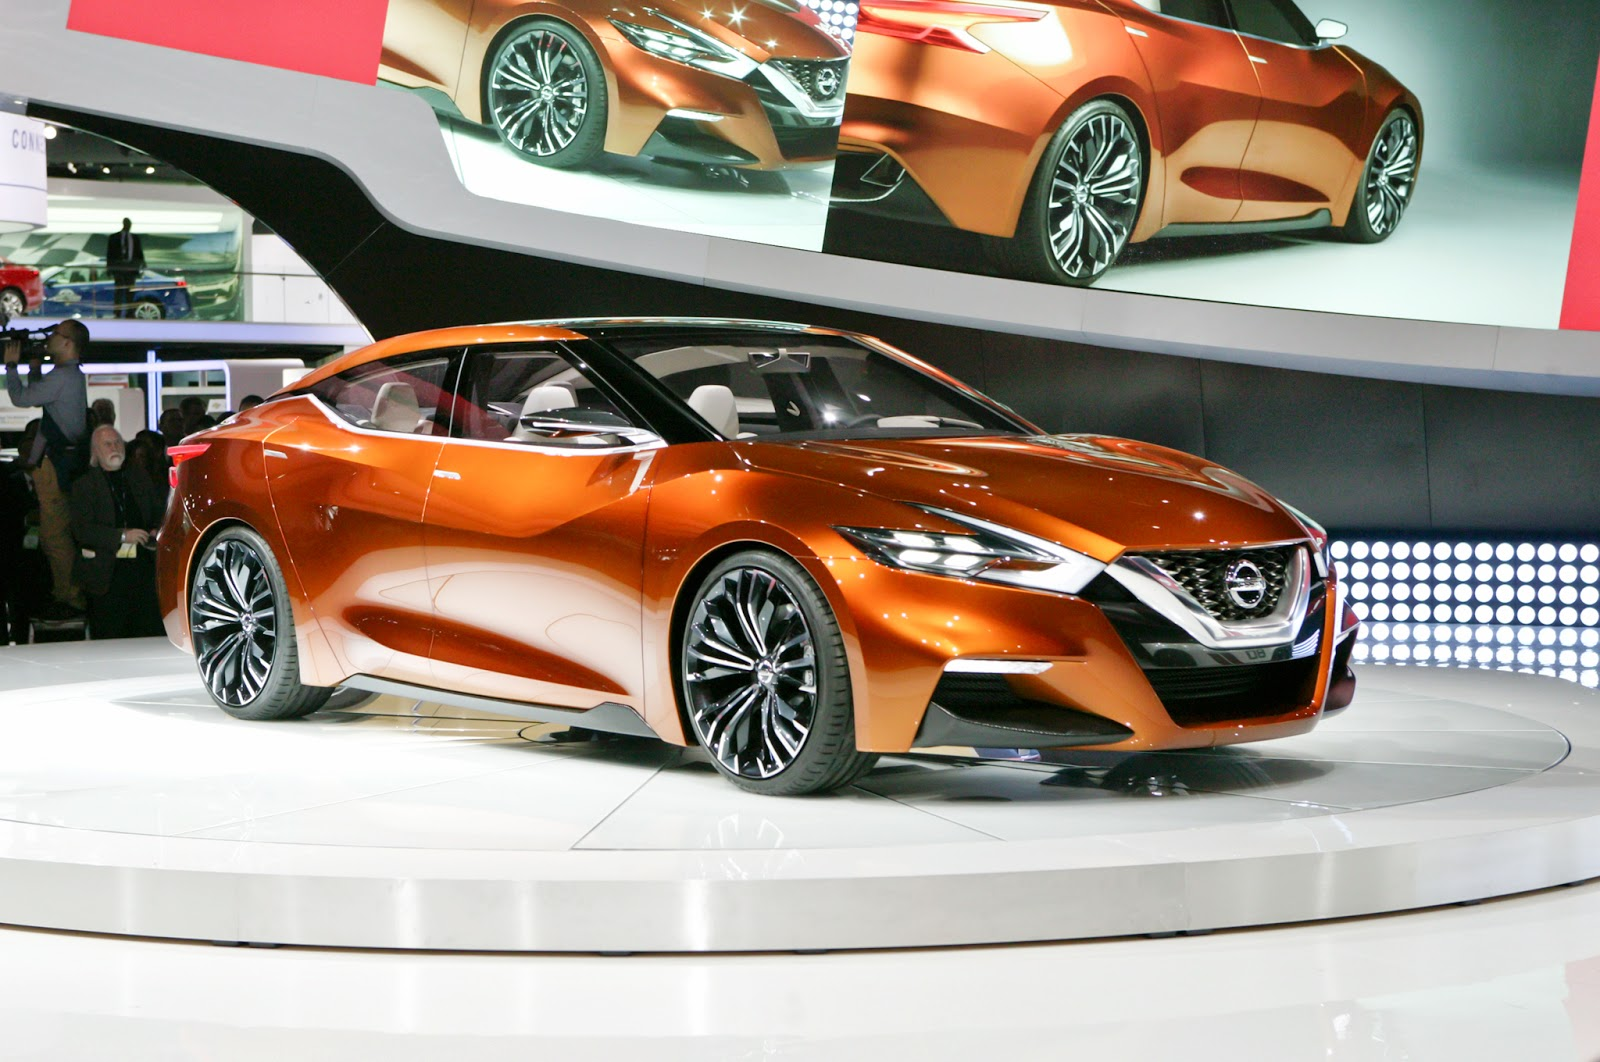 Nissan Calls It The Ssc For Sport Sedan Concept But You Can Just Call It A Preview Of The Next Maxima The So Called Four Door Sports Car